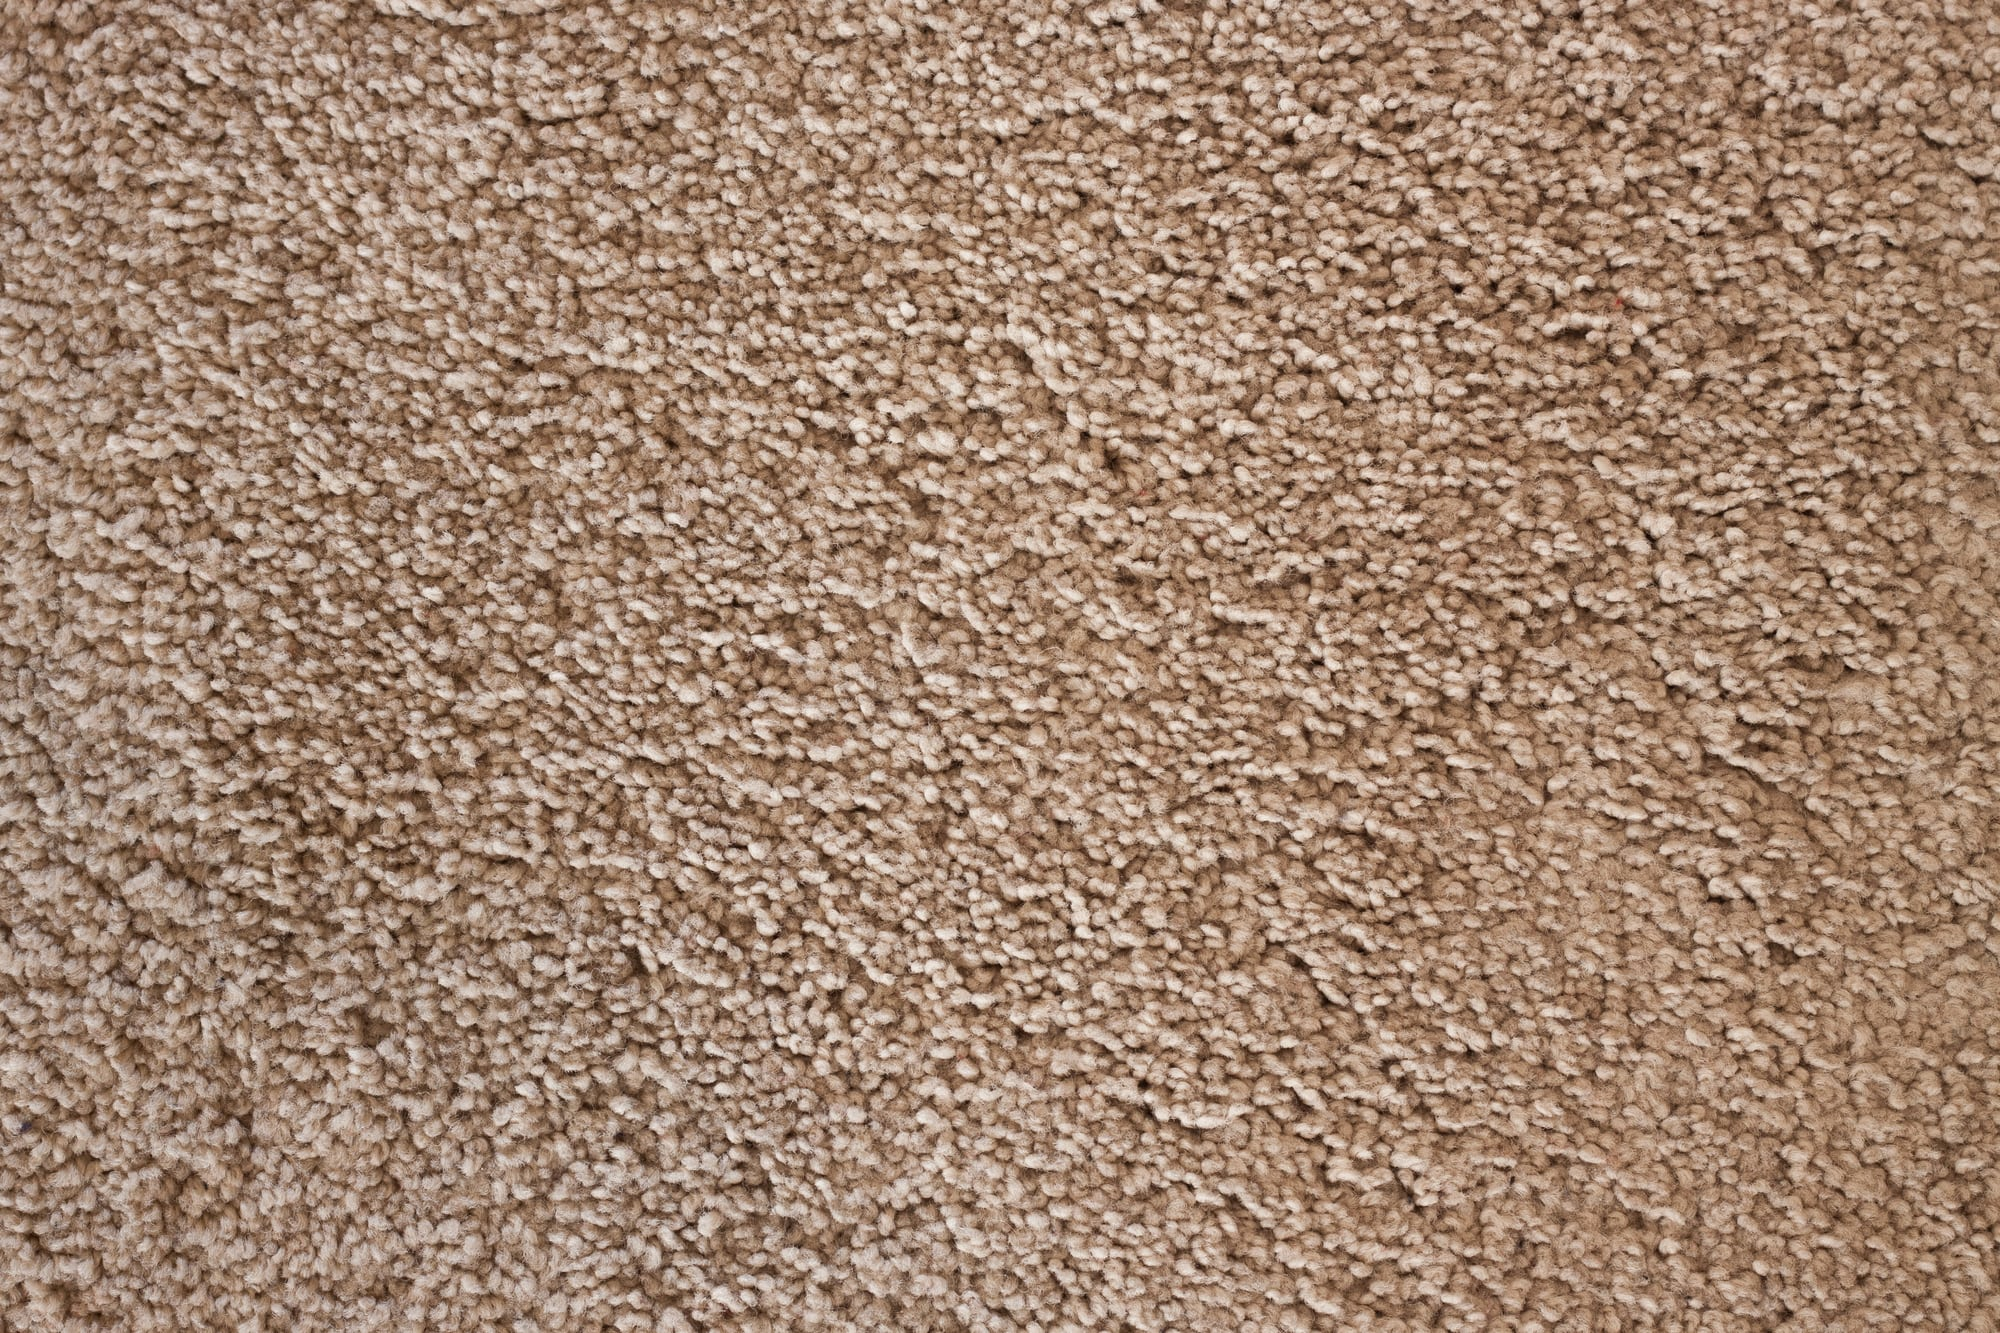 Carpet_flooring.jpg